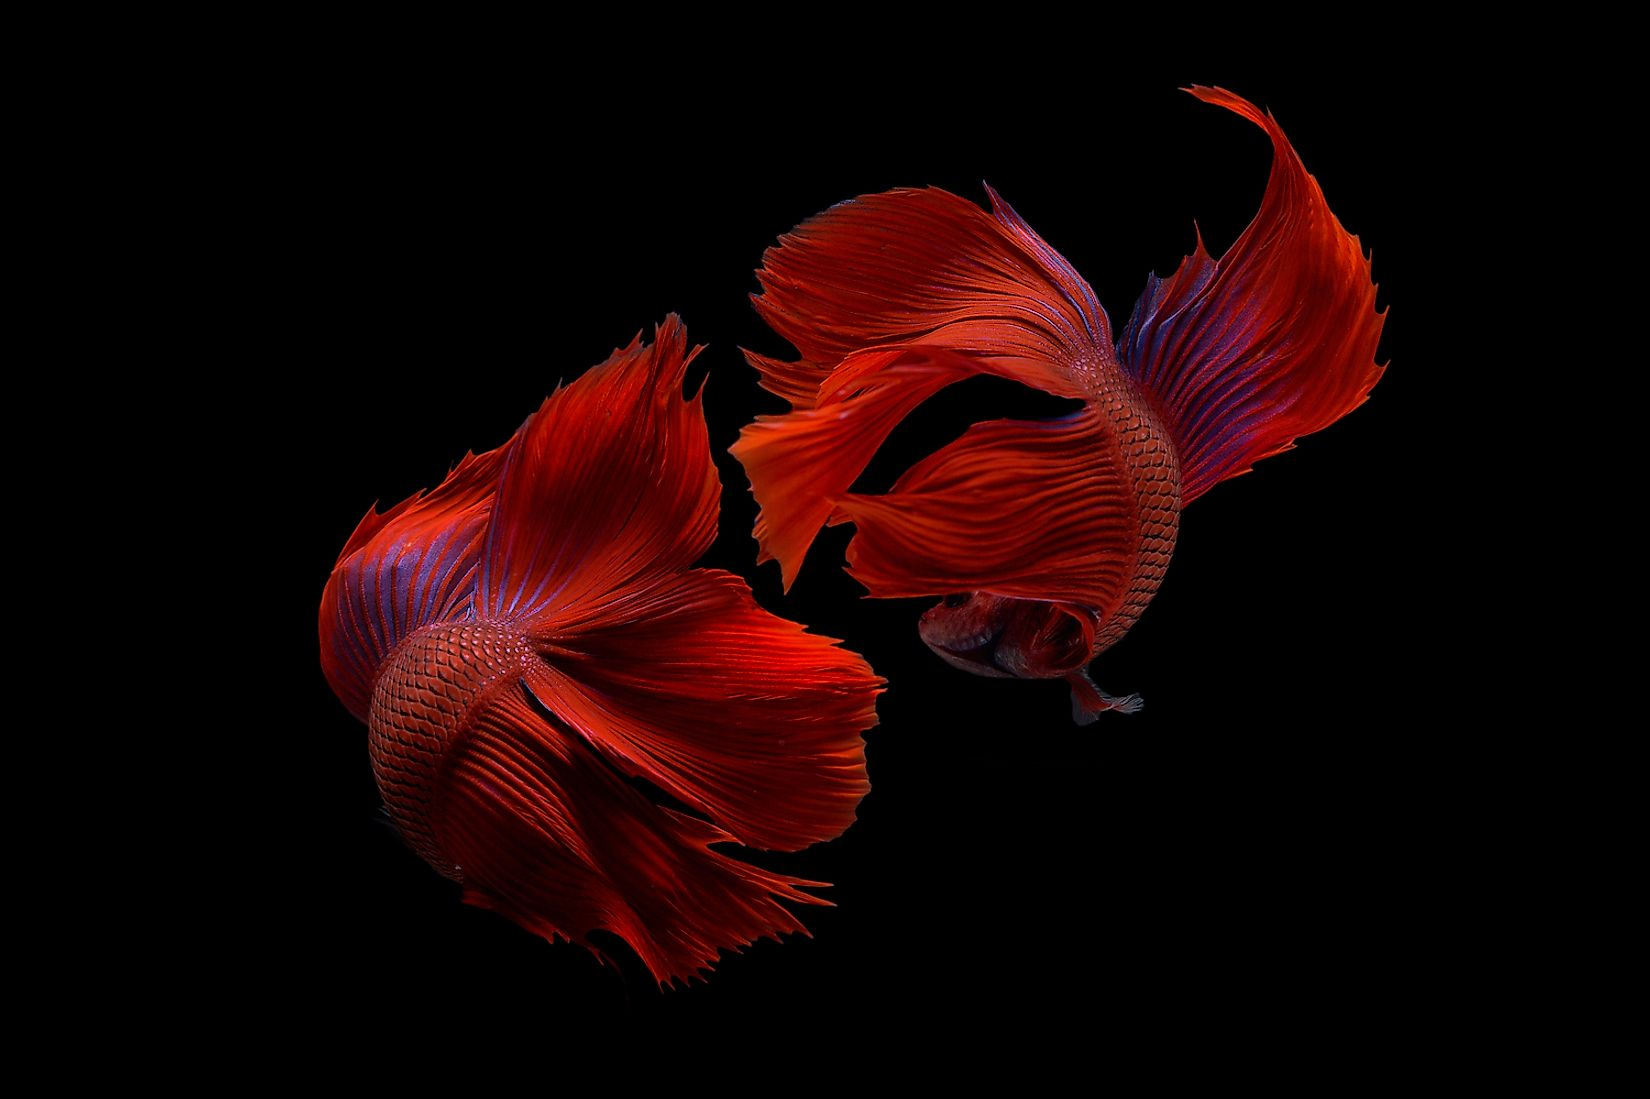 Two betta fish, siamese fighting fish (Halfmoon betta )isolated on black background. Image credit: Hoang Trung Hon/Shutterstock.com